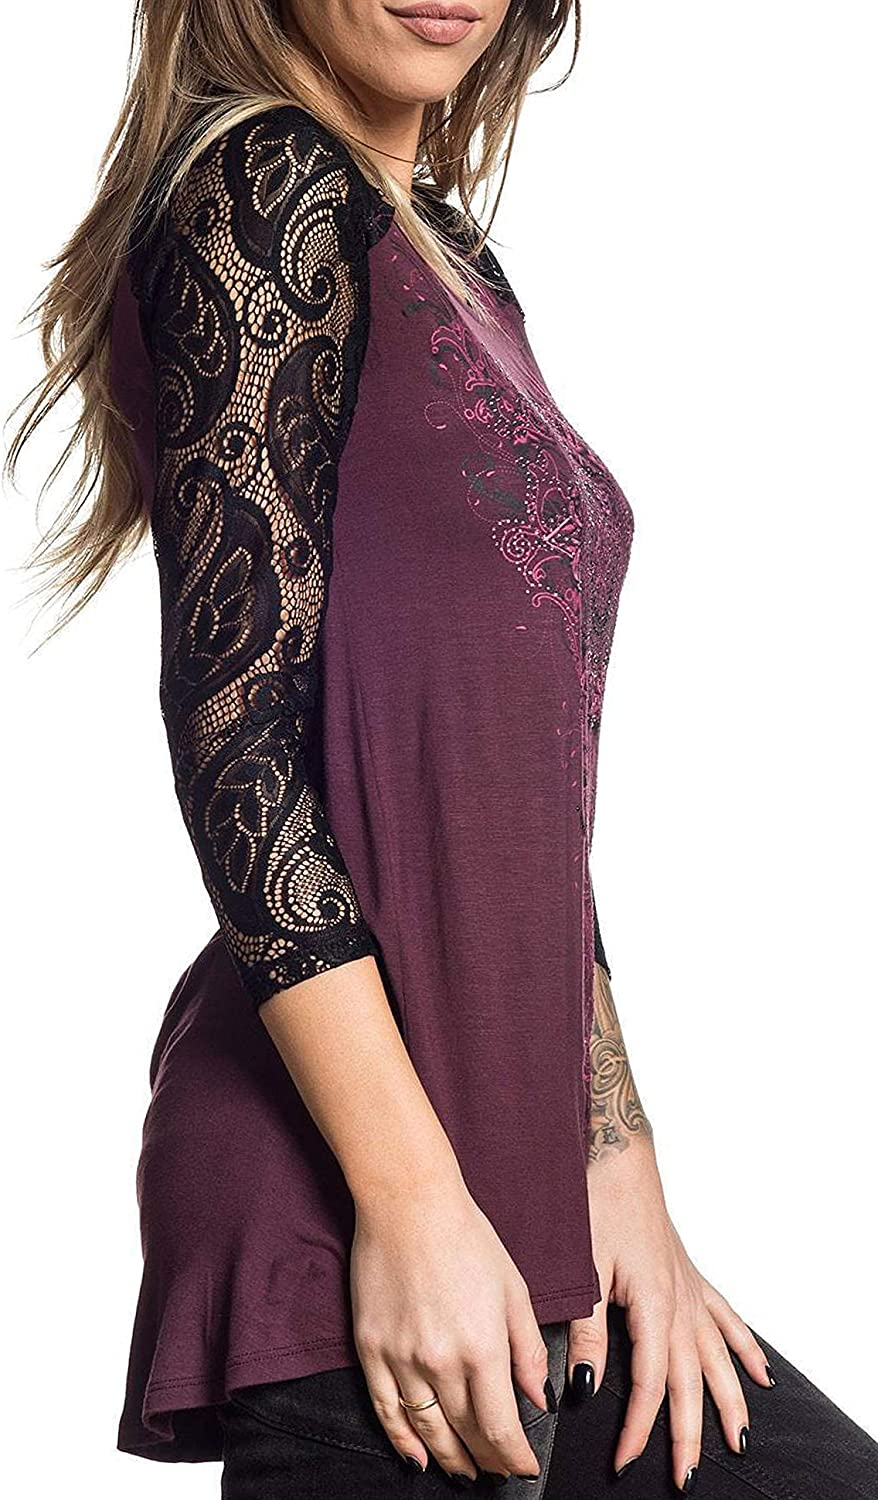 Sinful Dusty Road 3//4 Sleeve Graphic Fashion Scoop Neck T-shirt Top By Affliction